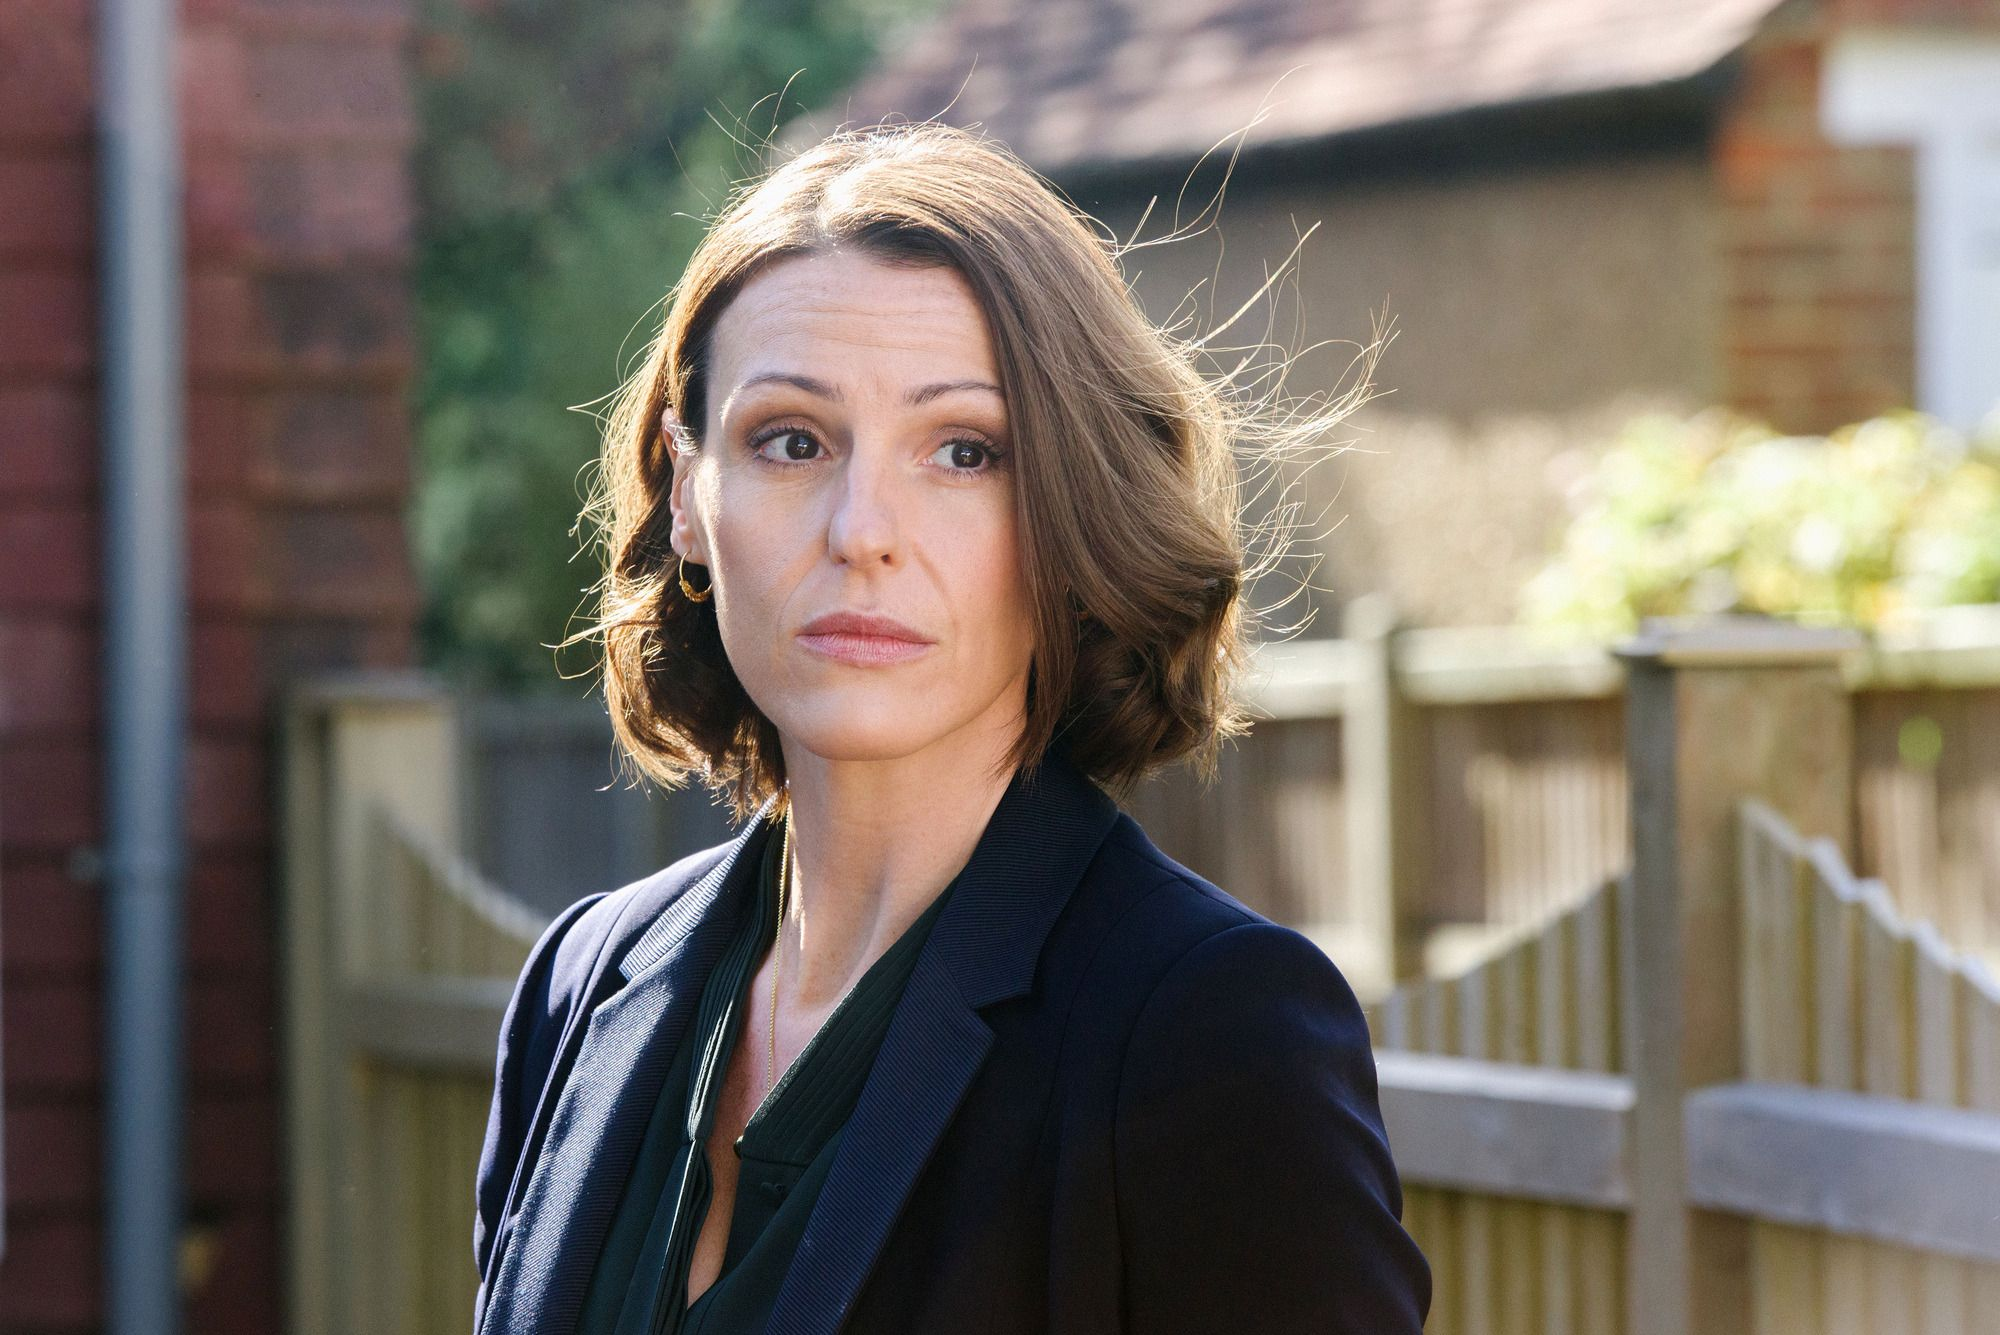 BBC announces new thriller 'Vigil' from makers of Line Of Duty starring Suranne Jones